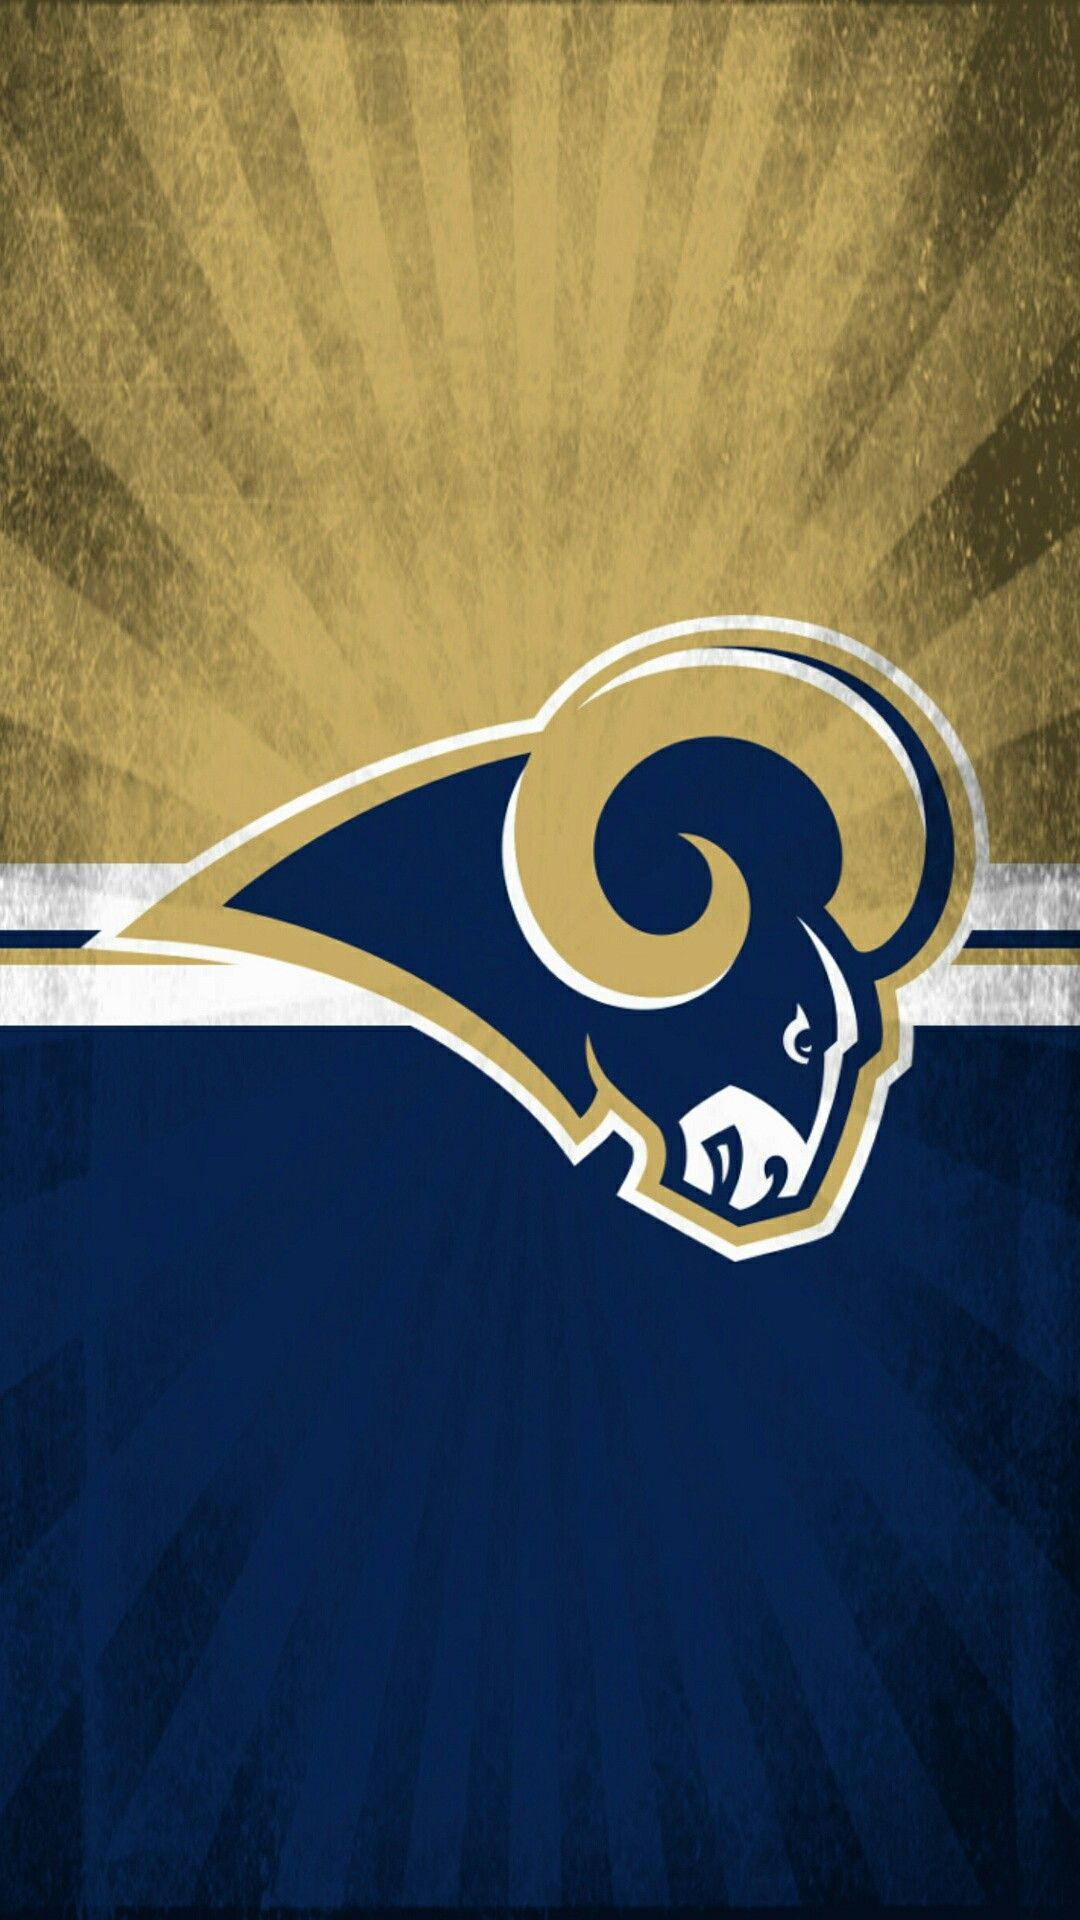 Pin By Aroncavina On Nfl Los Angeles Rams Logo Rams Football Los Angeles Rams